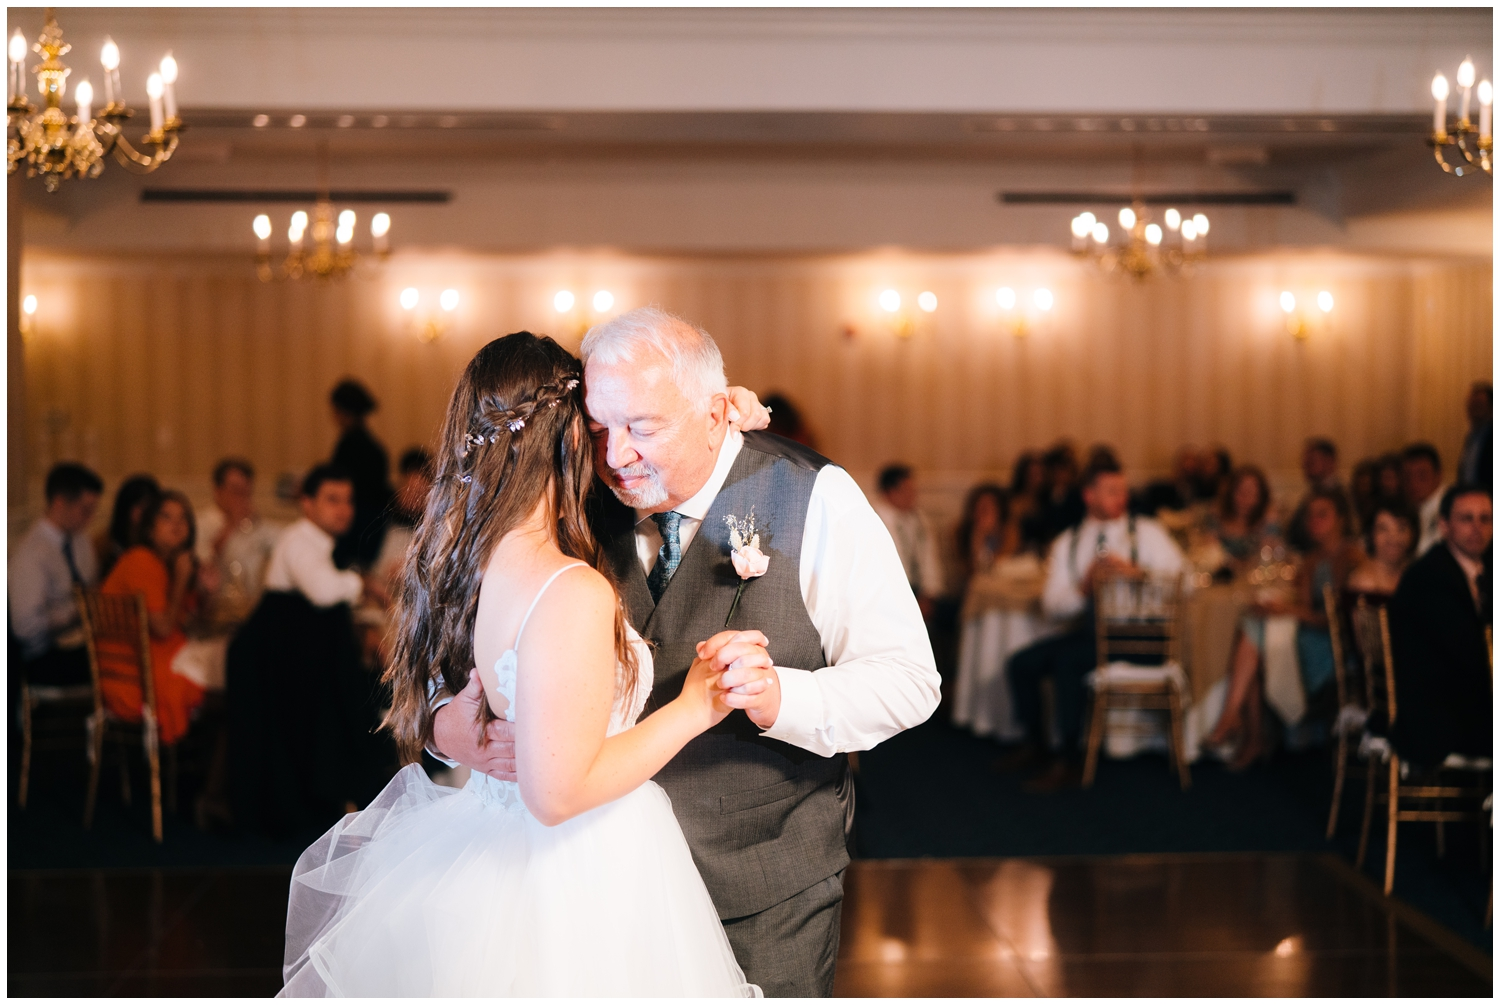 Madison Beach Hotel Wedding - Steven & Jessica_0209.jpg